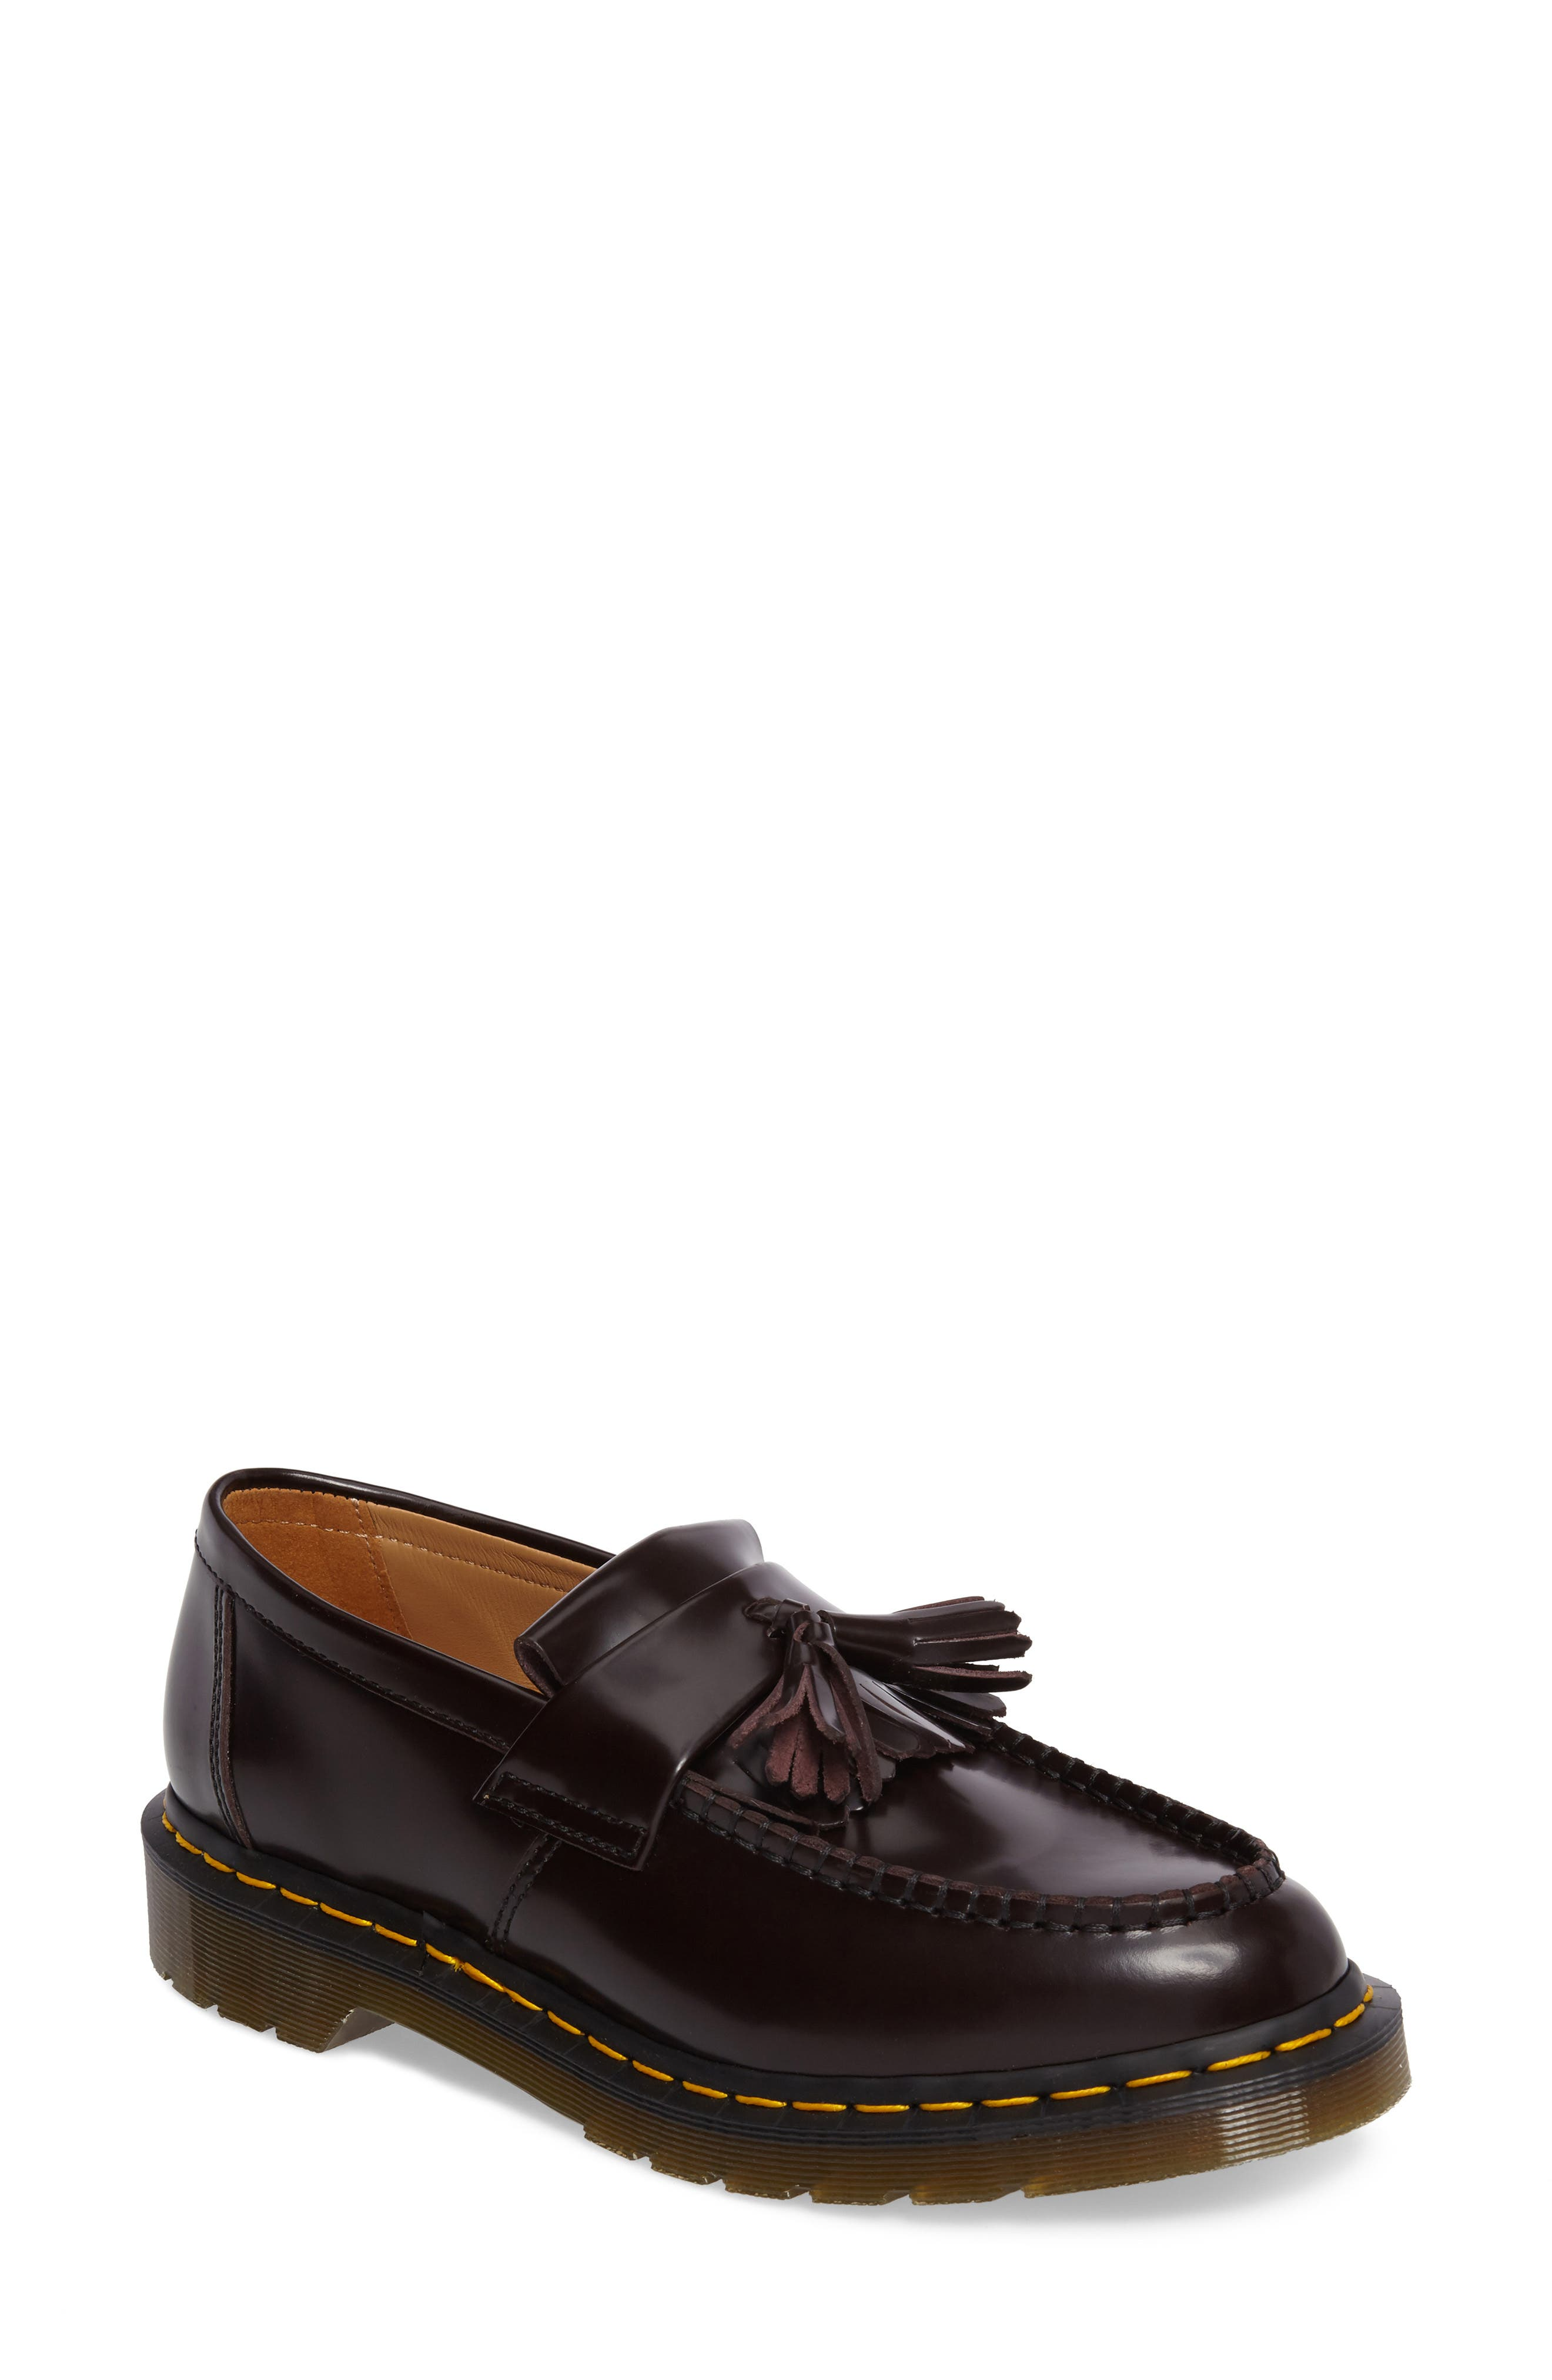 x Dr. Martens Tassel Loafer,                             Main thumbnail 1, color,                             RED